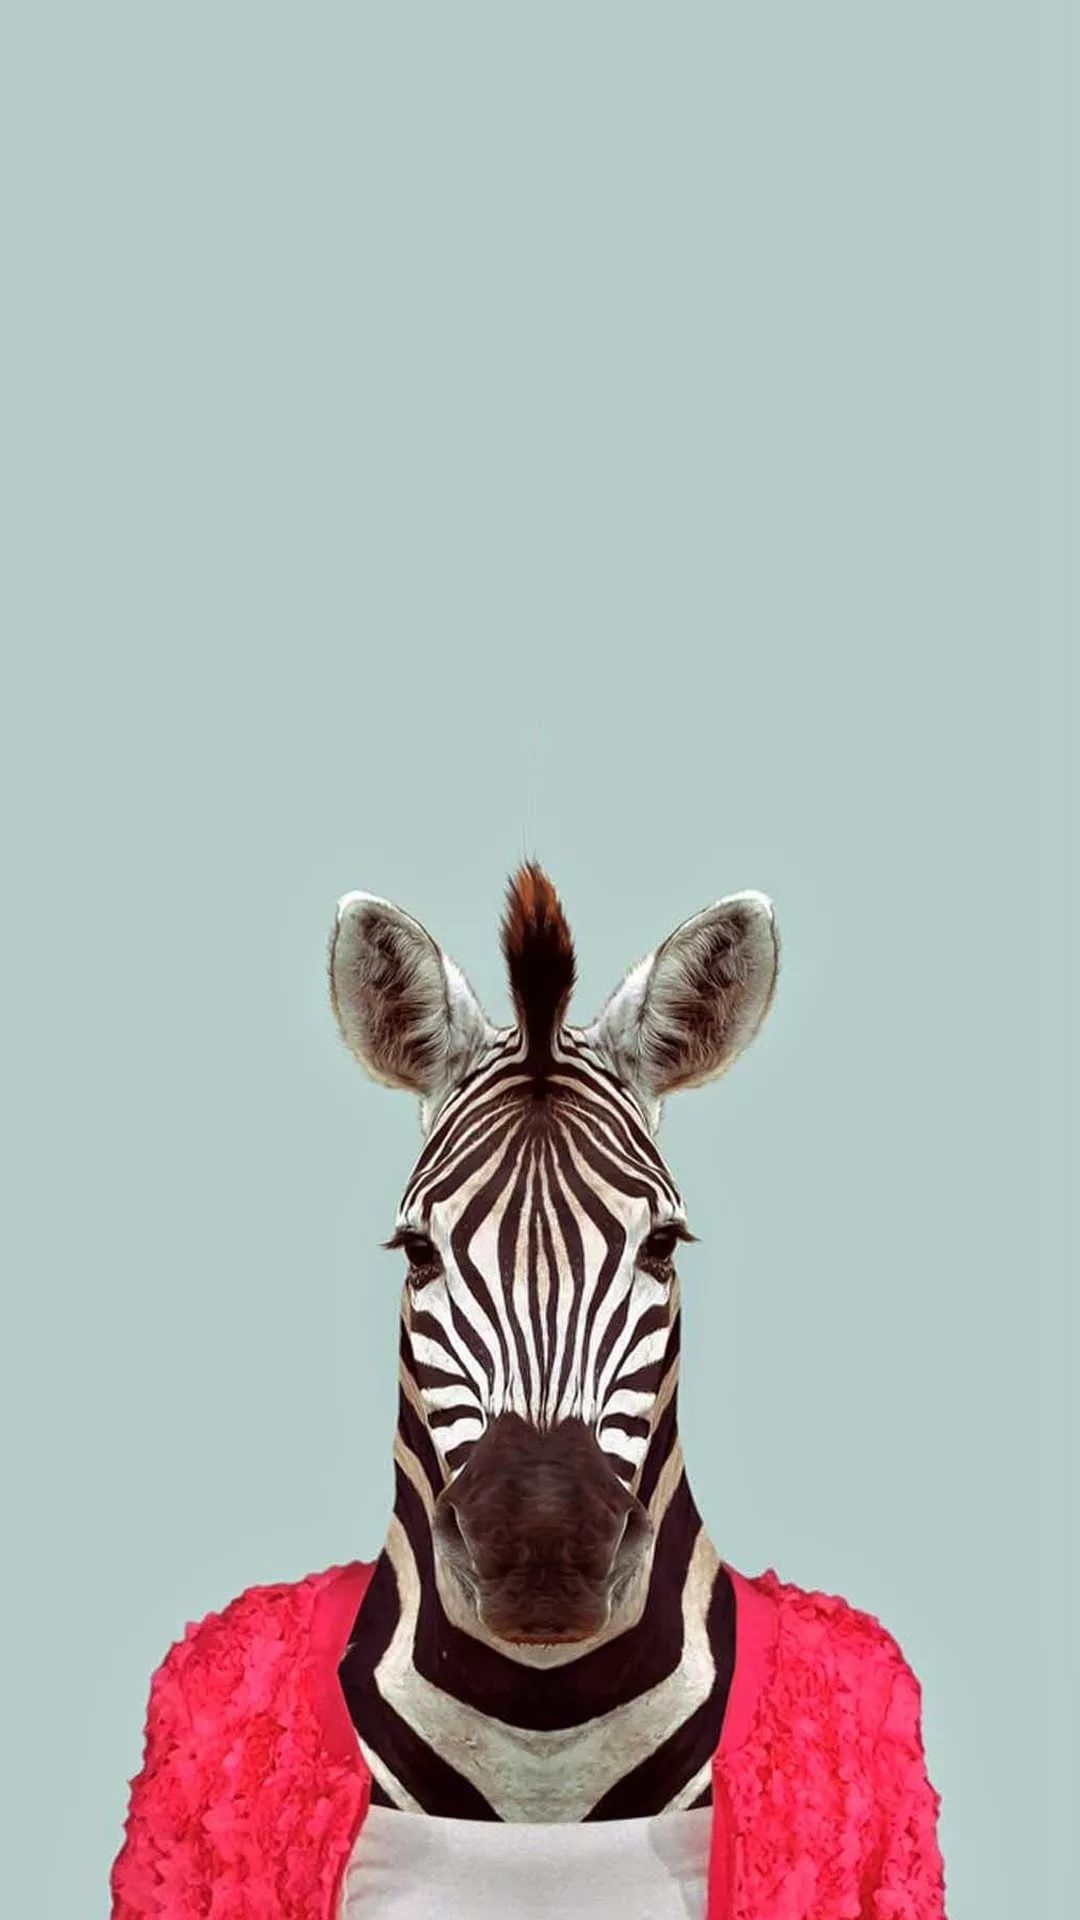 Animal Print wallpaper for android